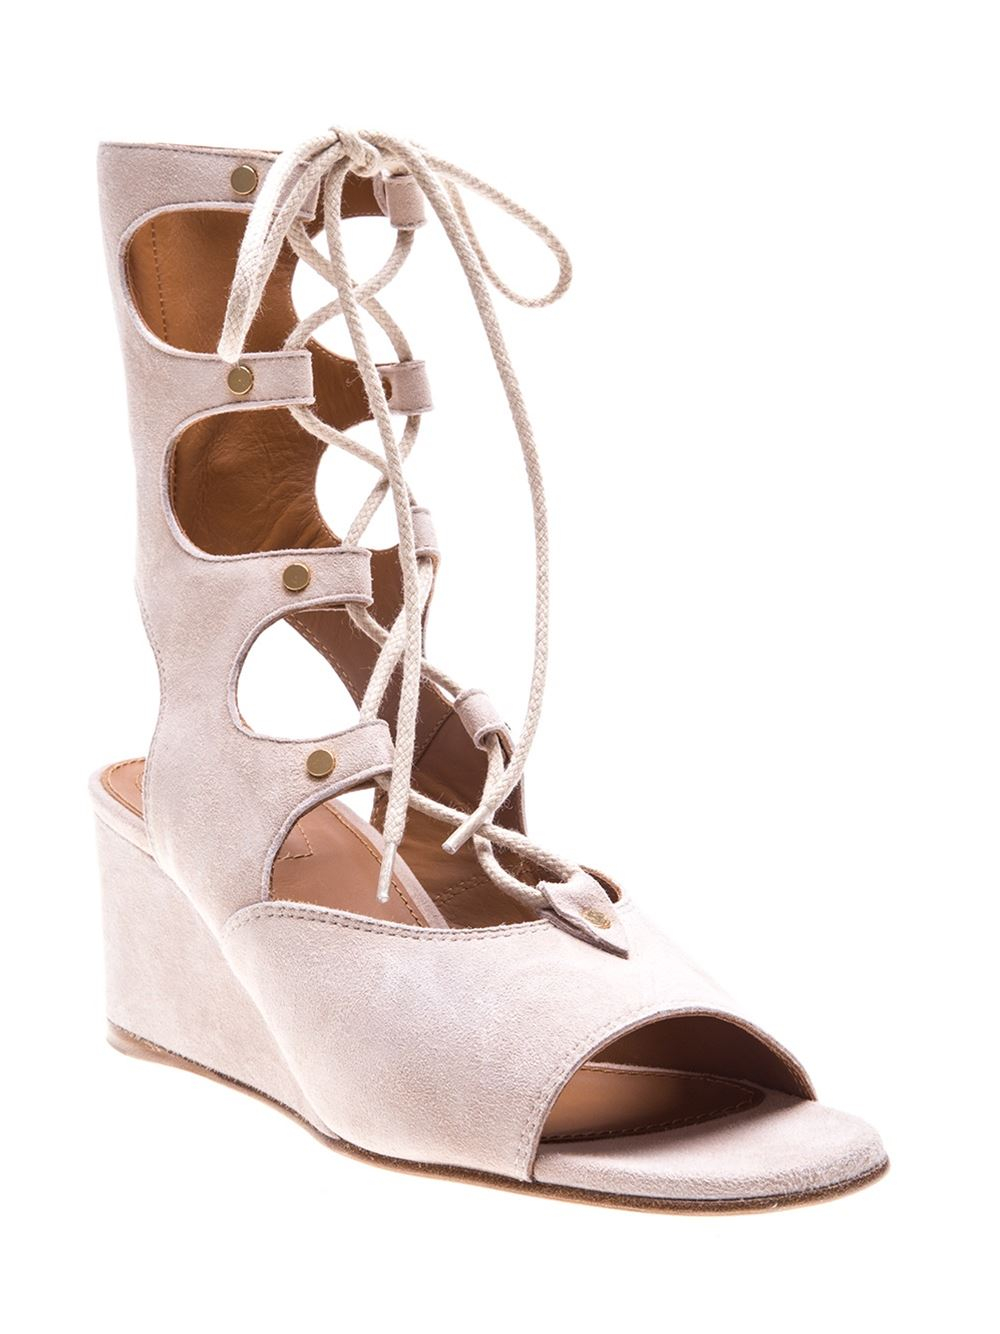 Chlo 233 Gladiator Lace Up Suede Wedge Sandals In Natural Lyst